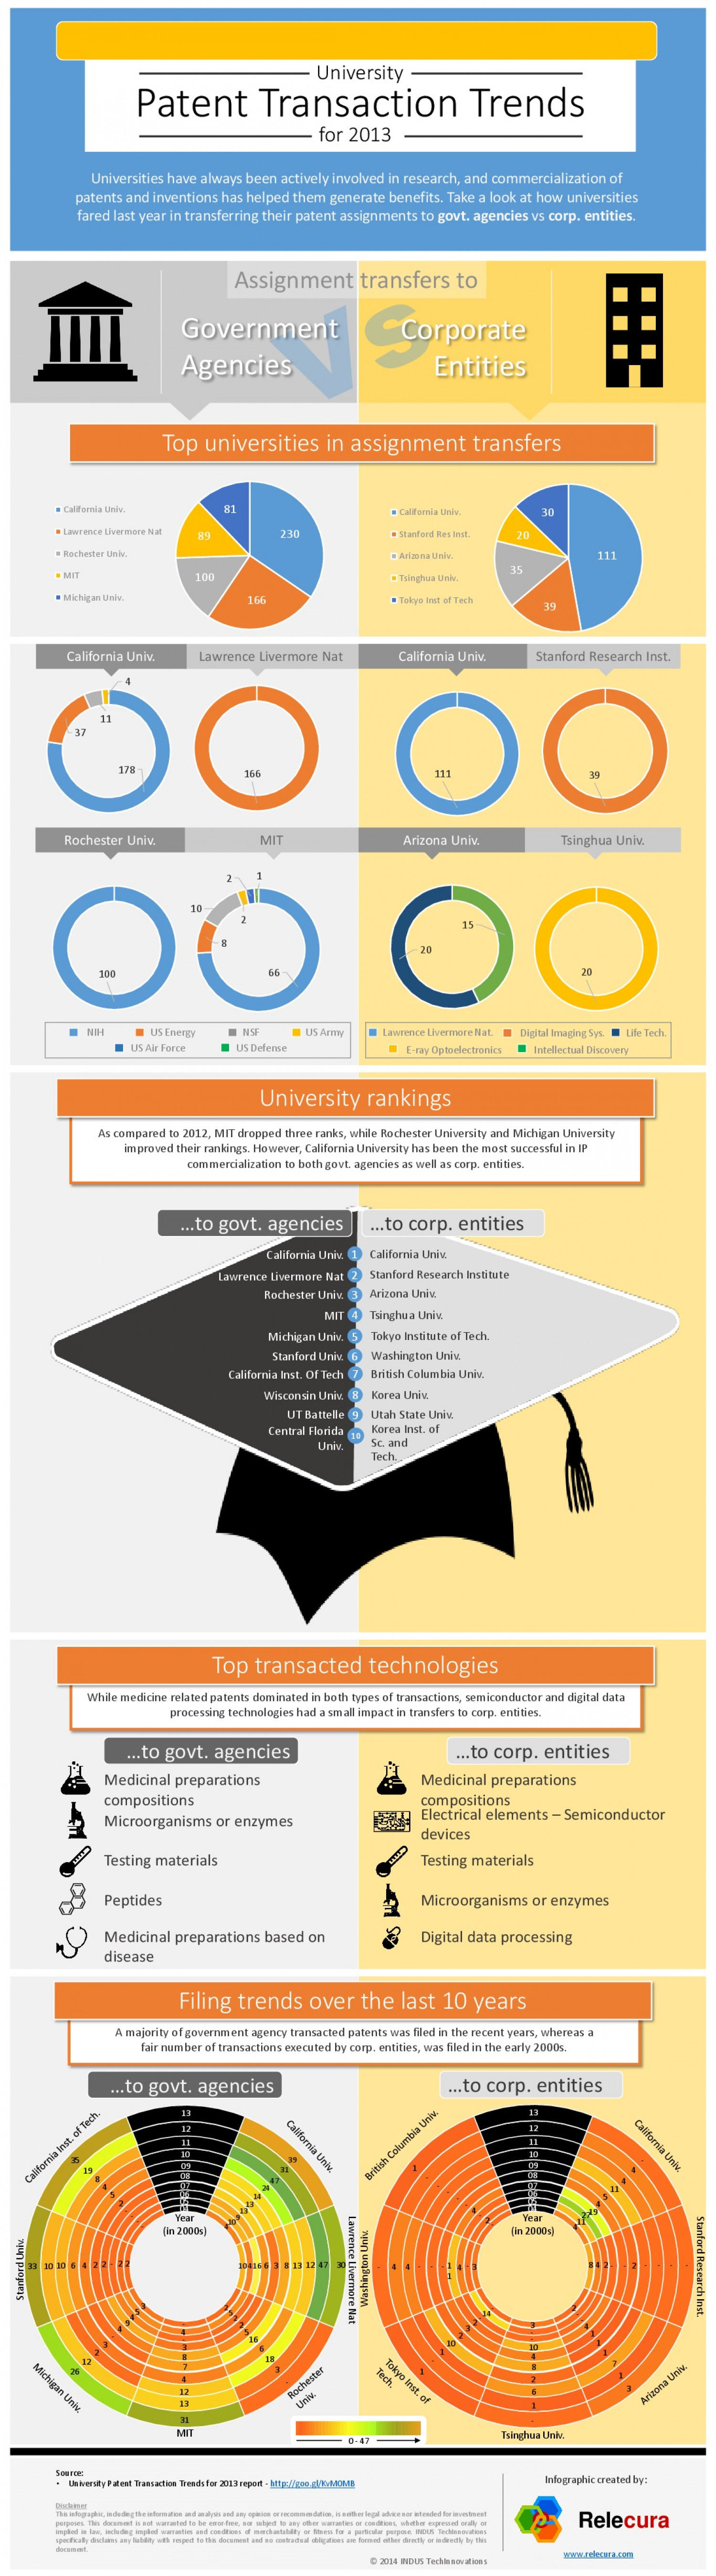 University patent transaction trends 2013 Infographic